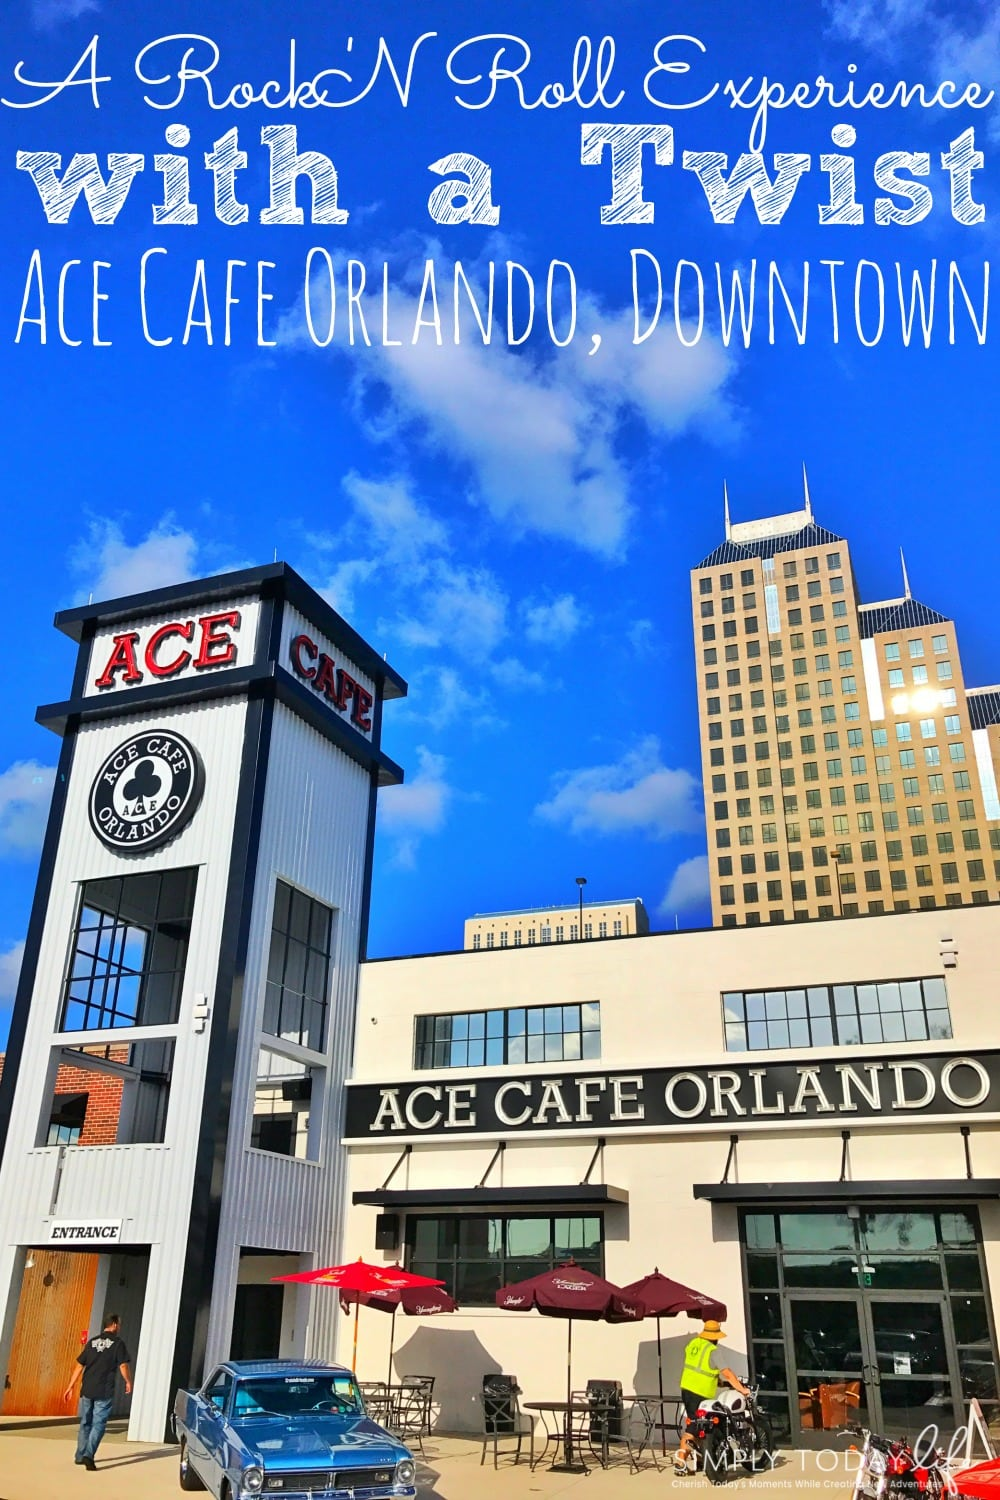 A Rock 'N Roll Experience with a Twist at Ace Cafe Orlando - simplytodaylife.com